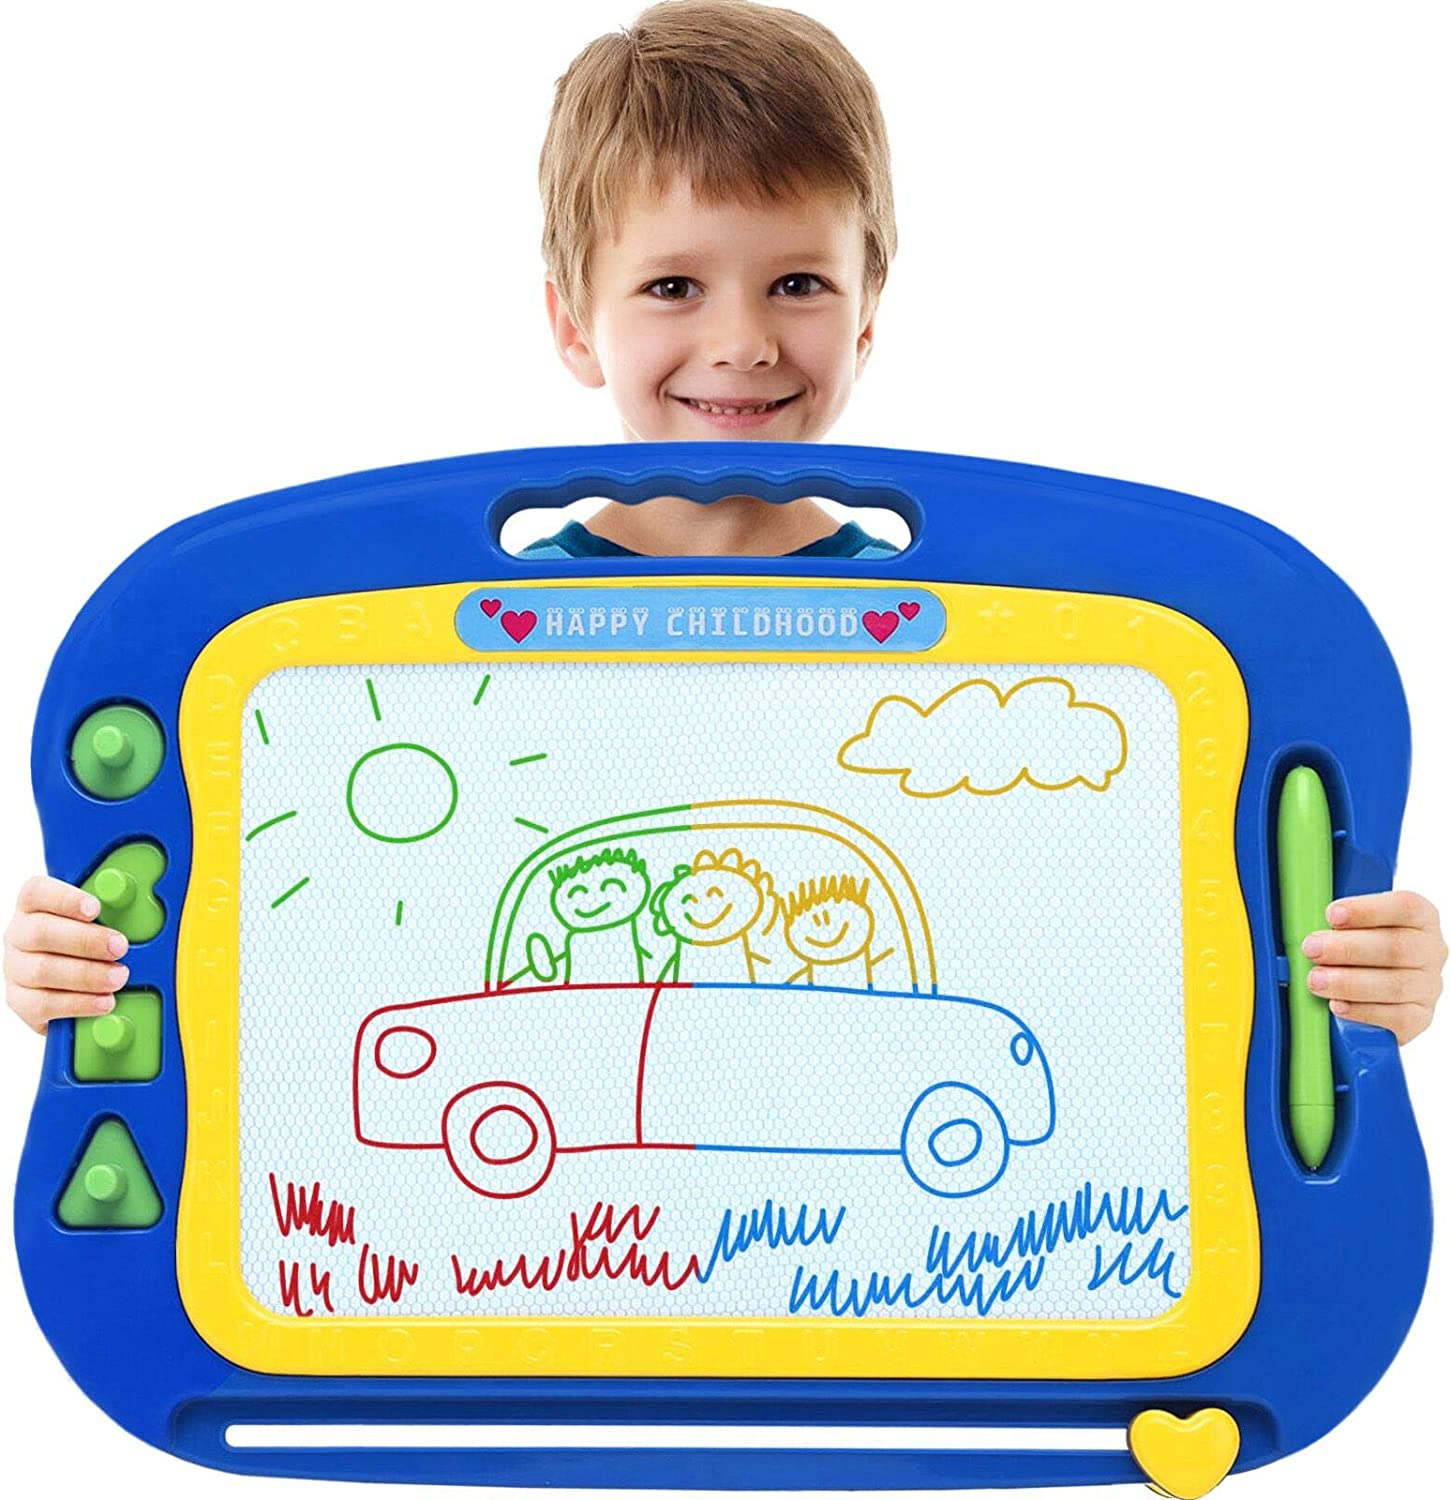 Magnetic Drawing Board,Large Doodle Board Toddler Toys for Girls Boys 3 4 5 6 7 Year Old Kids Gift Etch A Colorful Sketch Magnet Erasable Pad